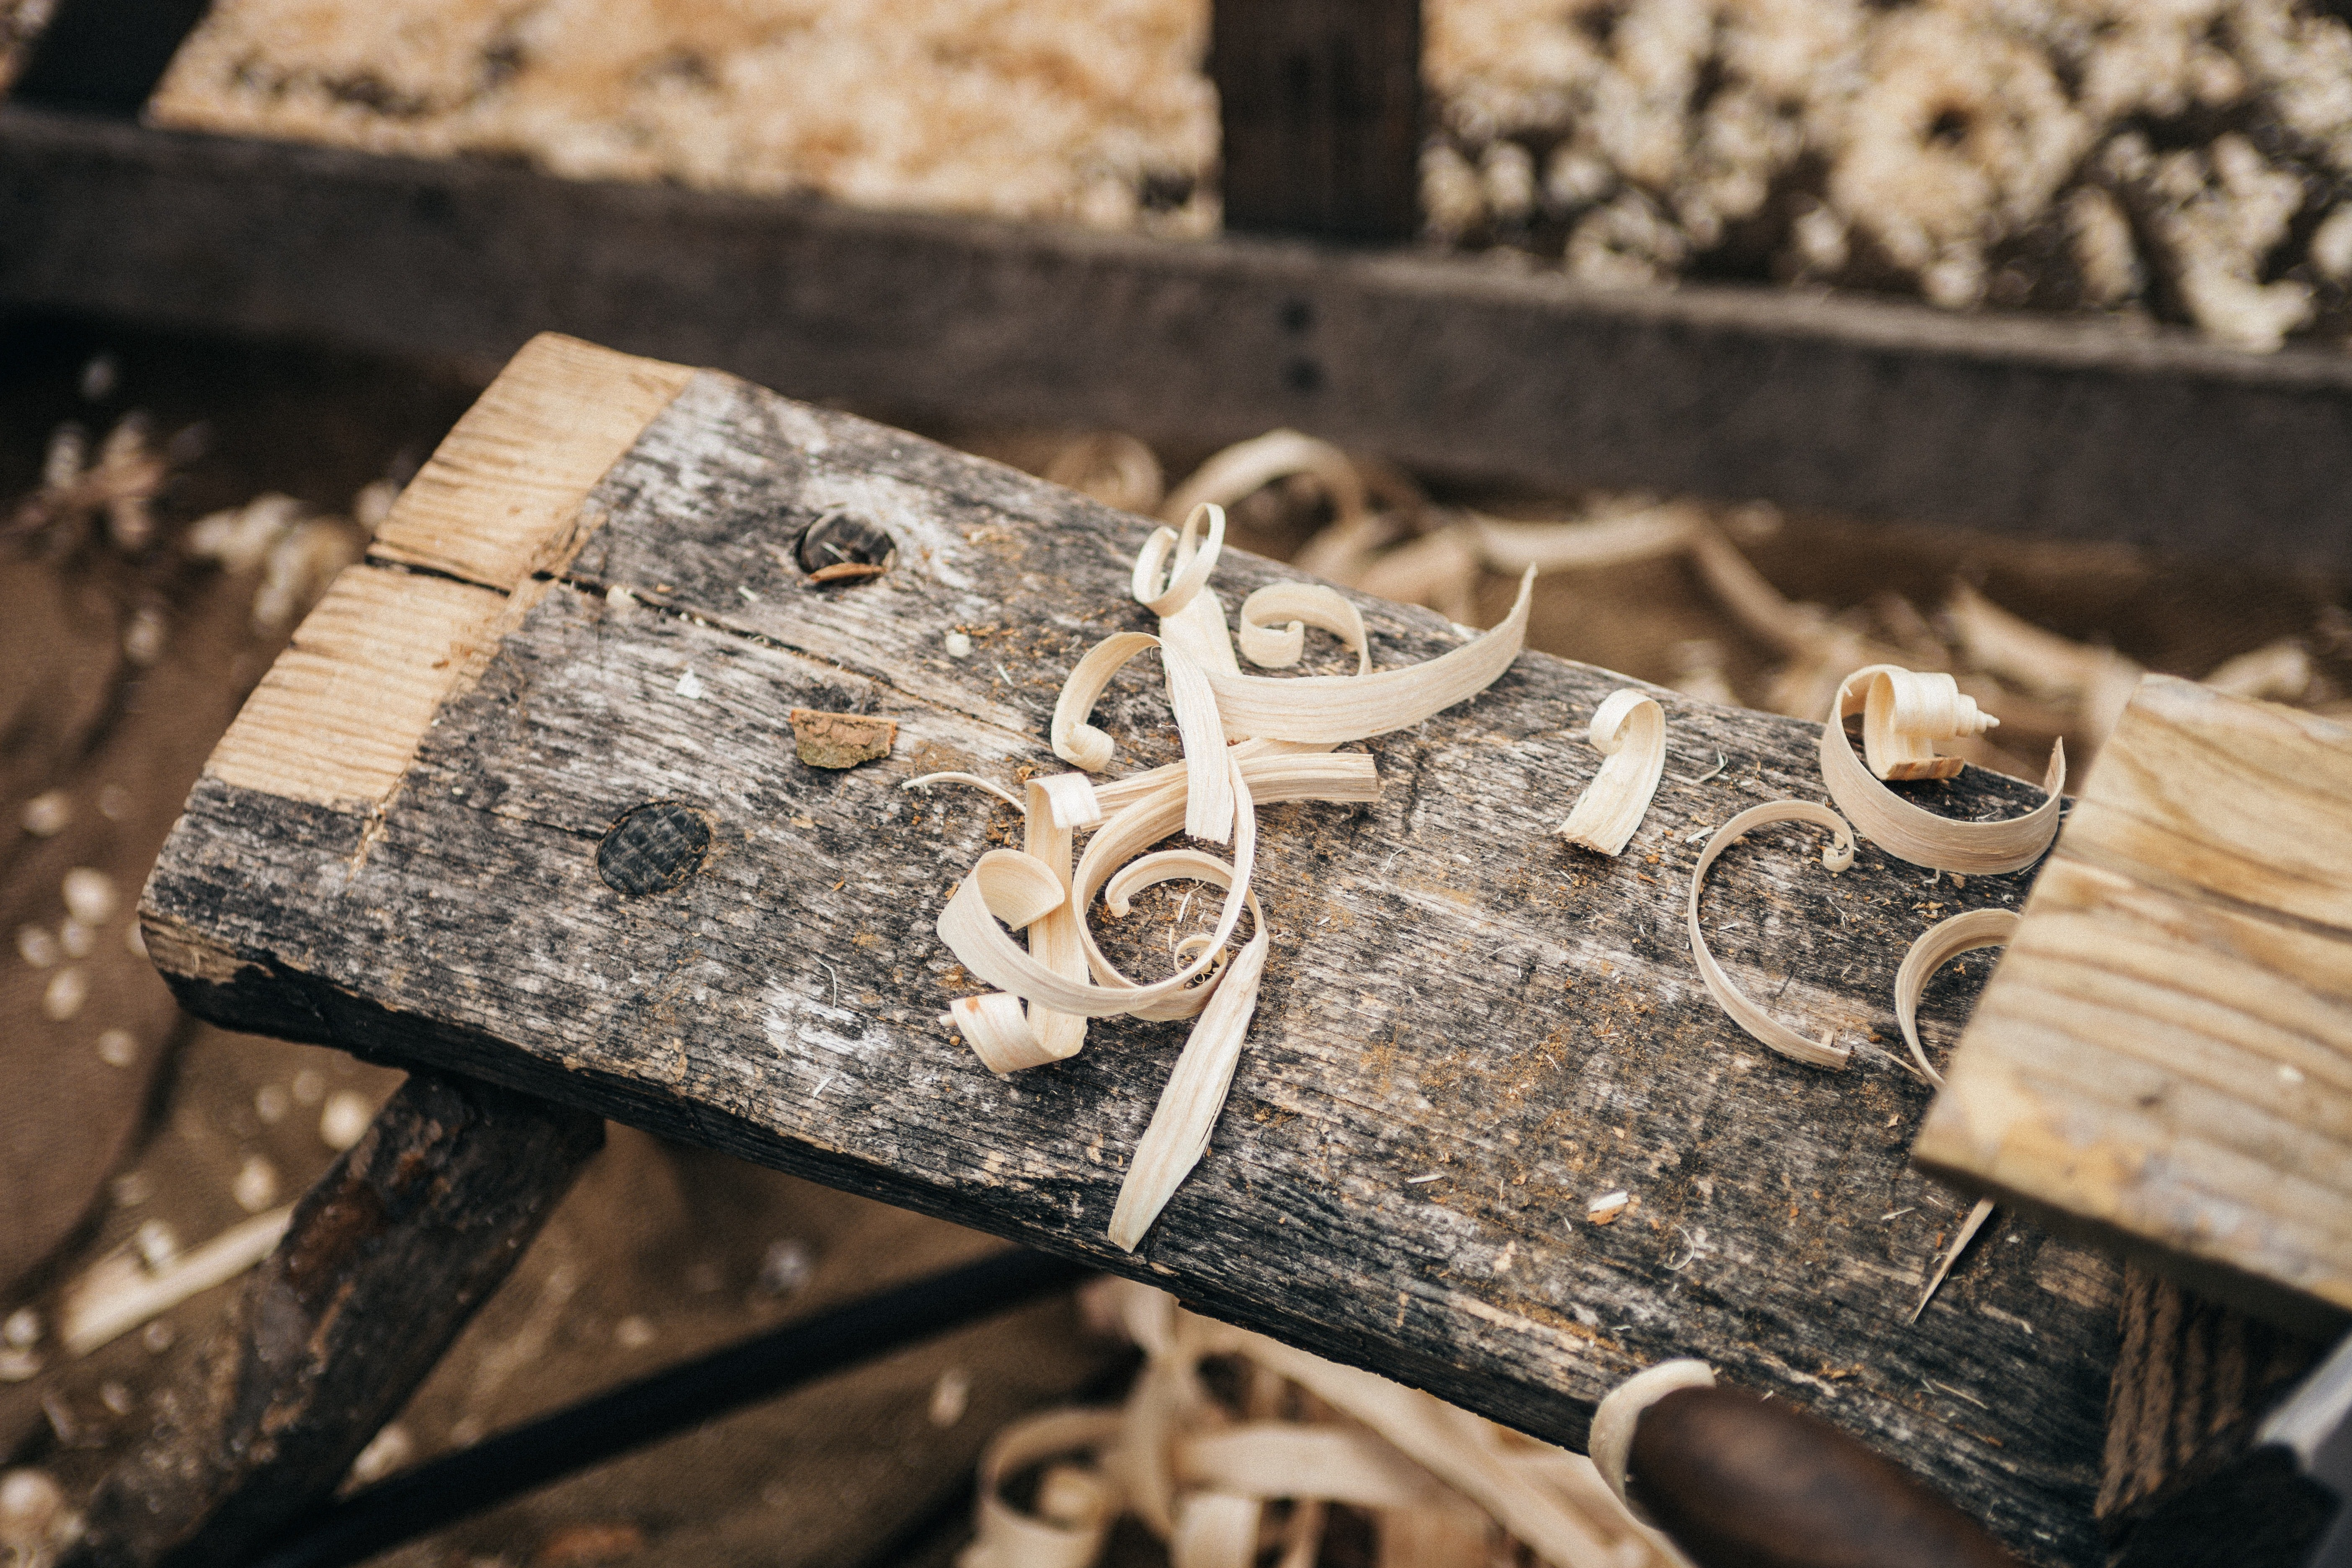 woodworking machinery: choose the right tool for the job